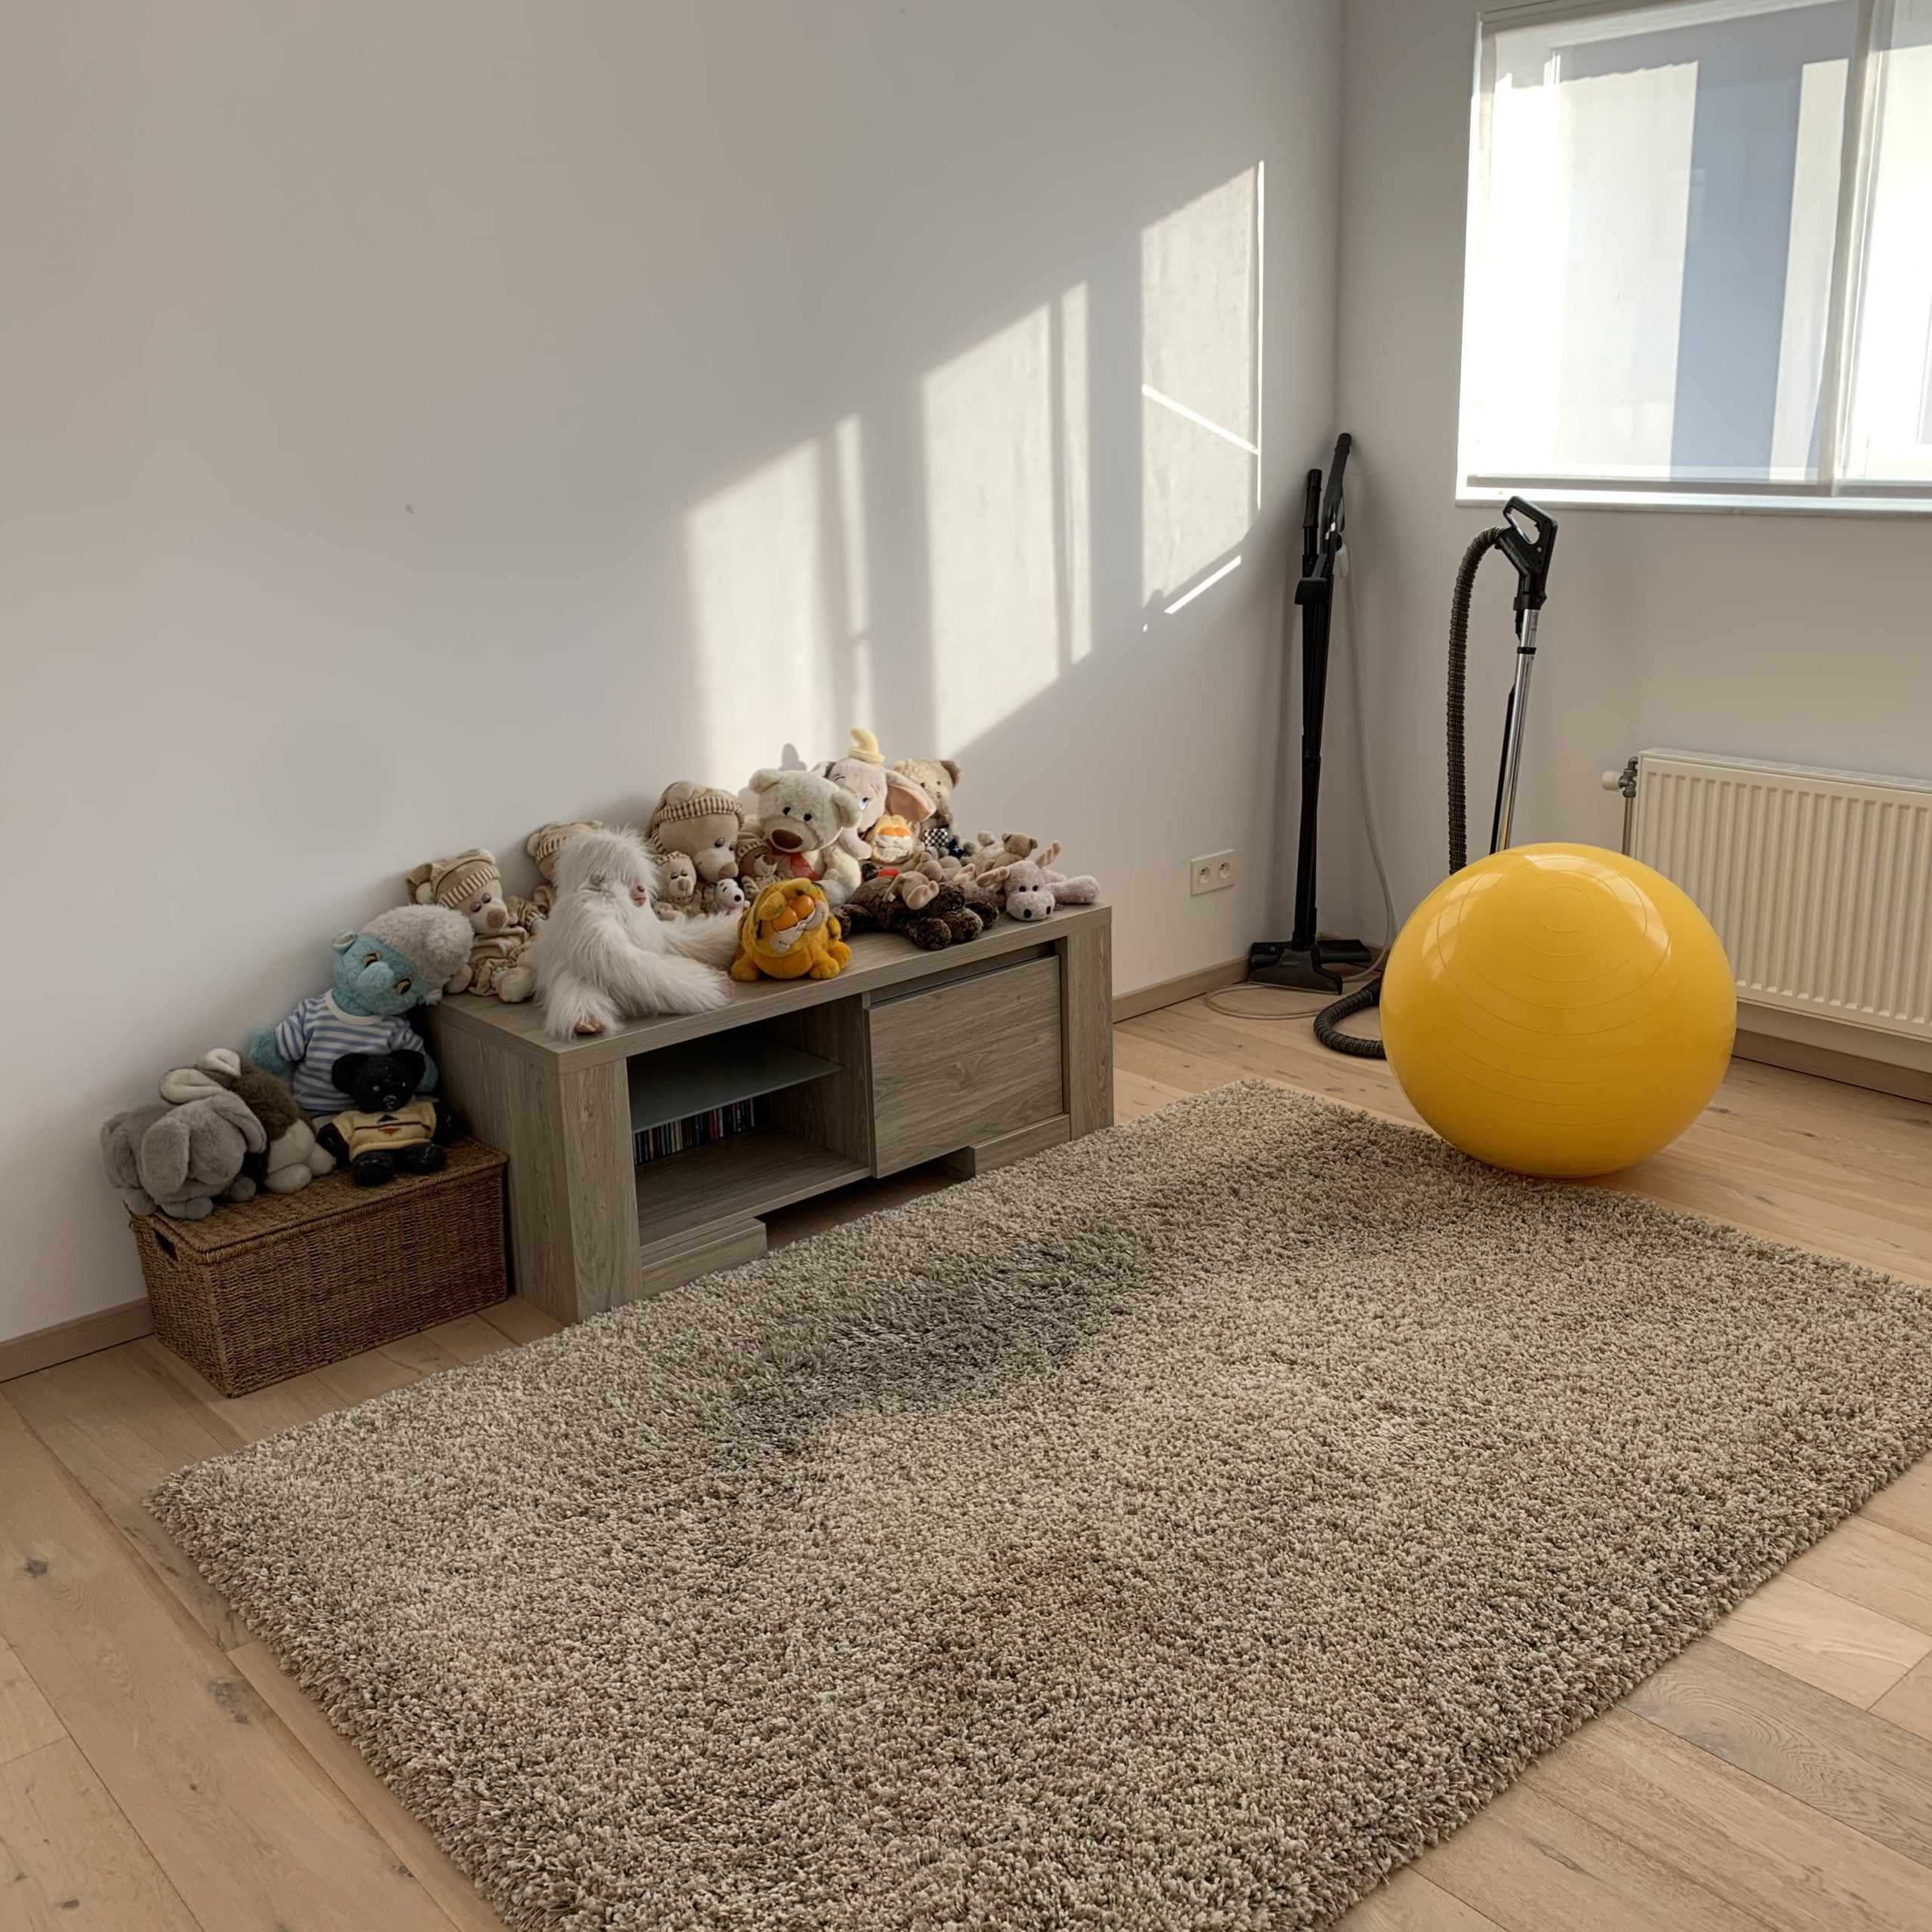 Negenoogstraat - Furnished big expat house in Temse